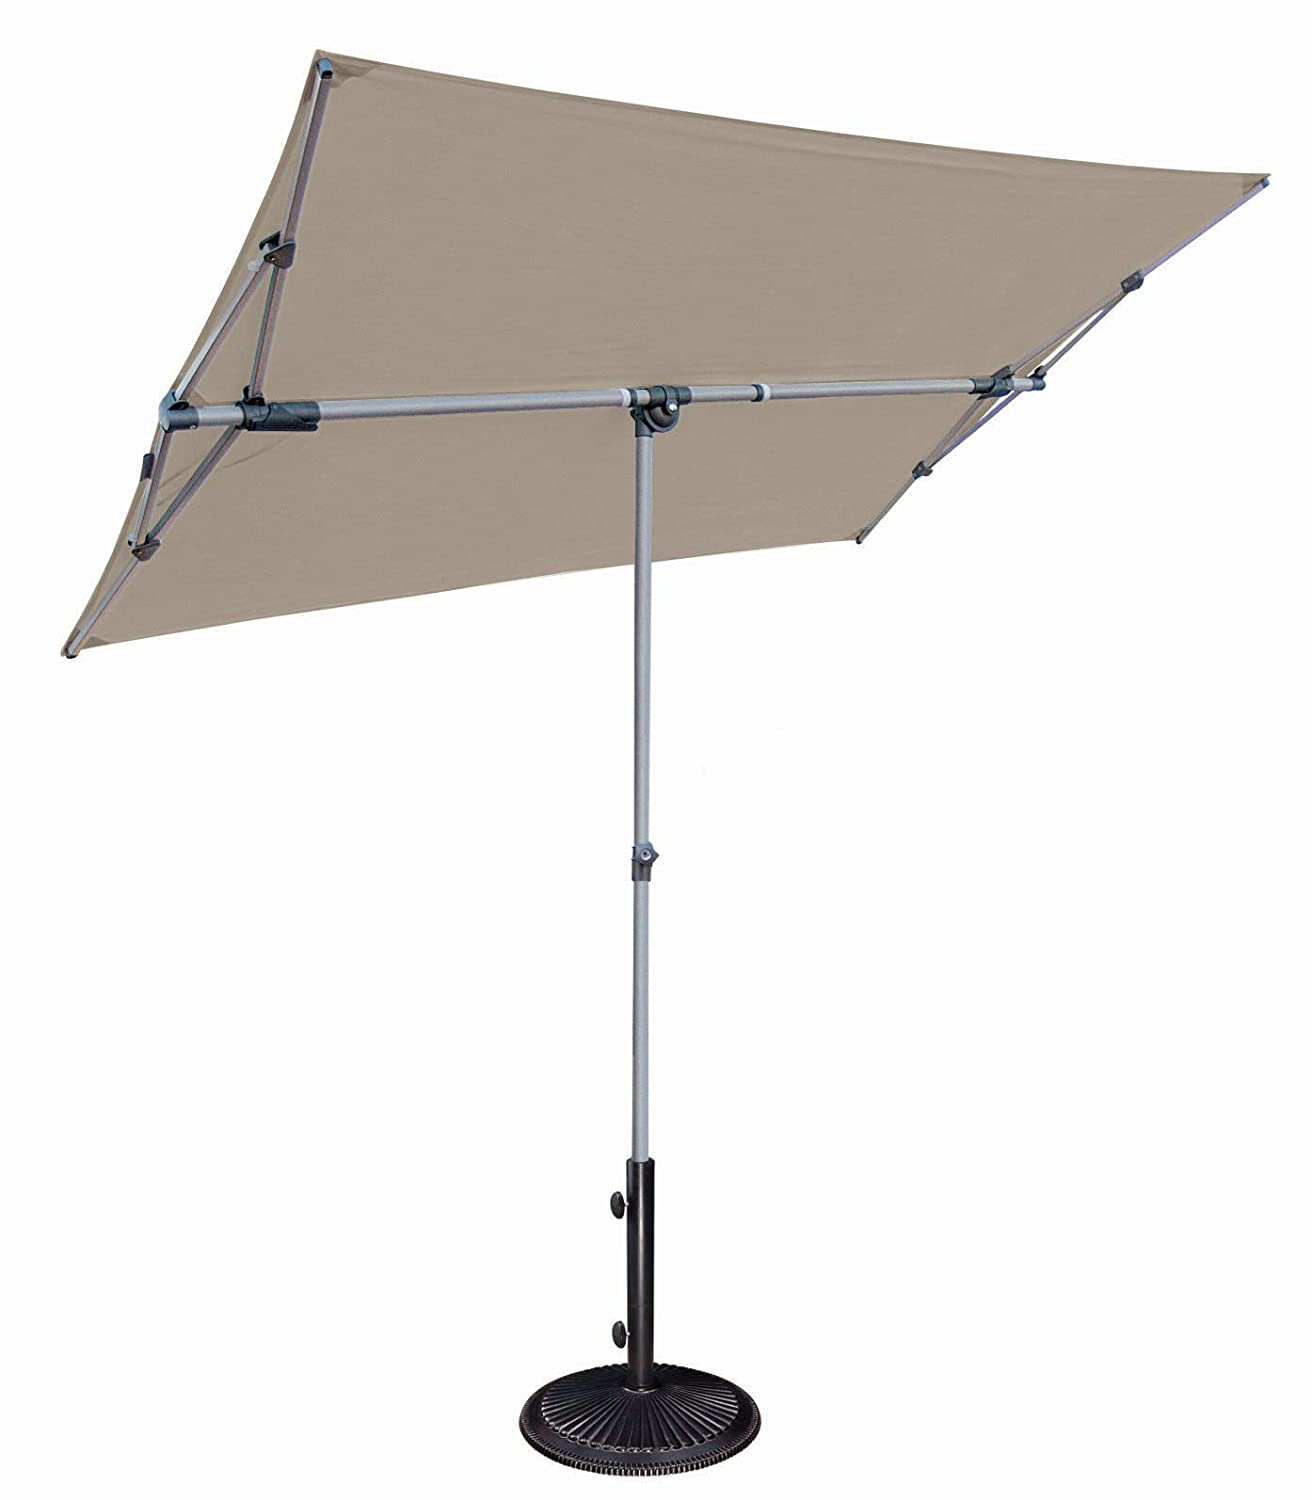 SimplyShade Capri Patio Umbrella in Stone